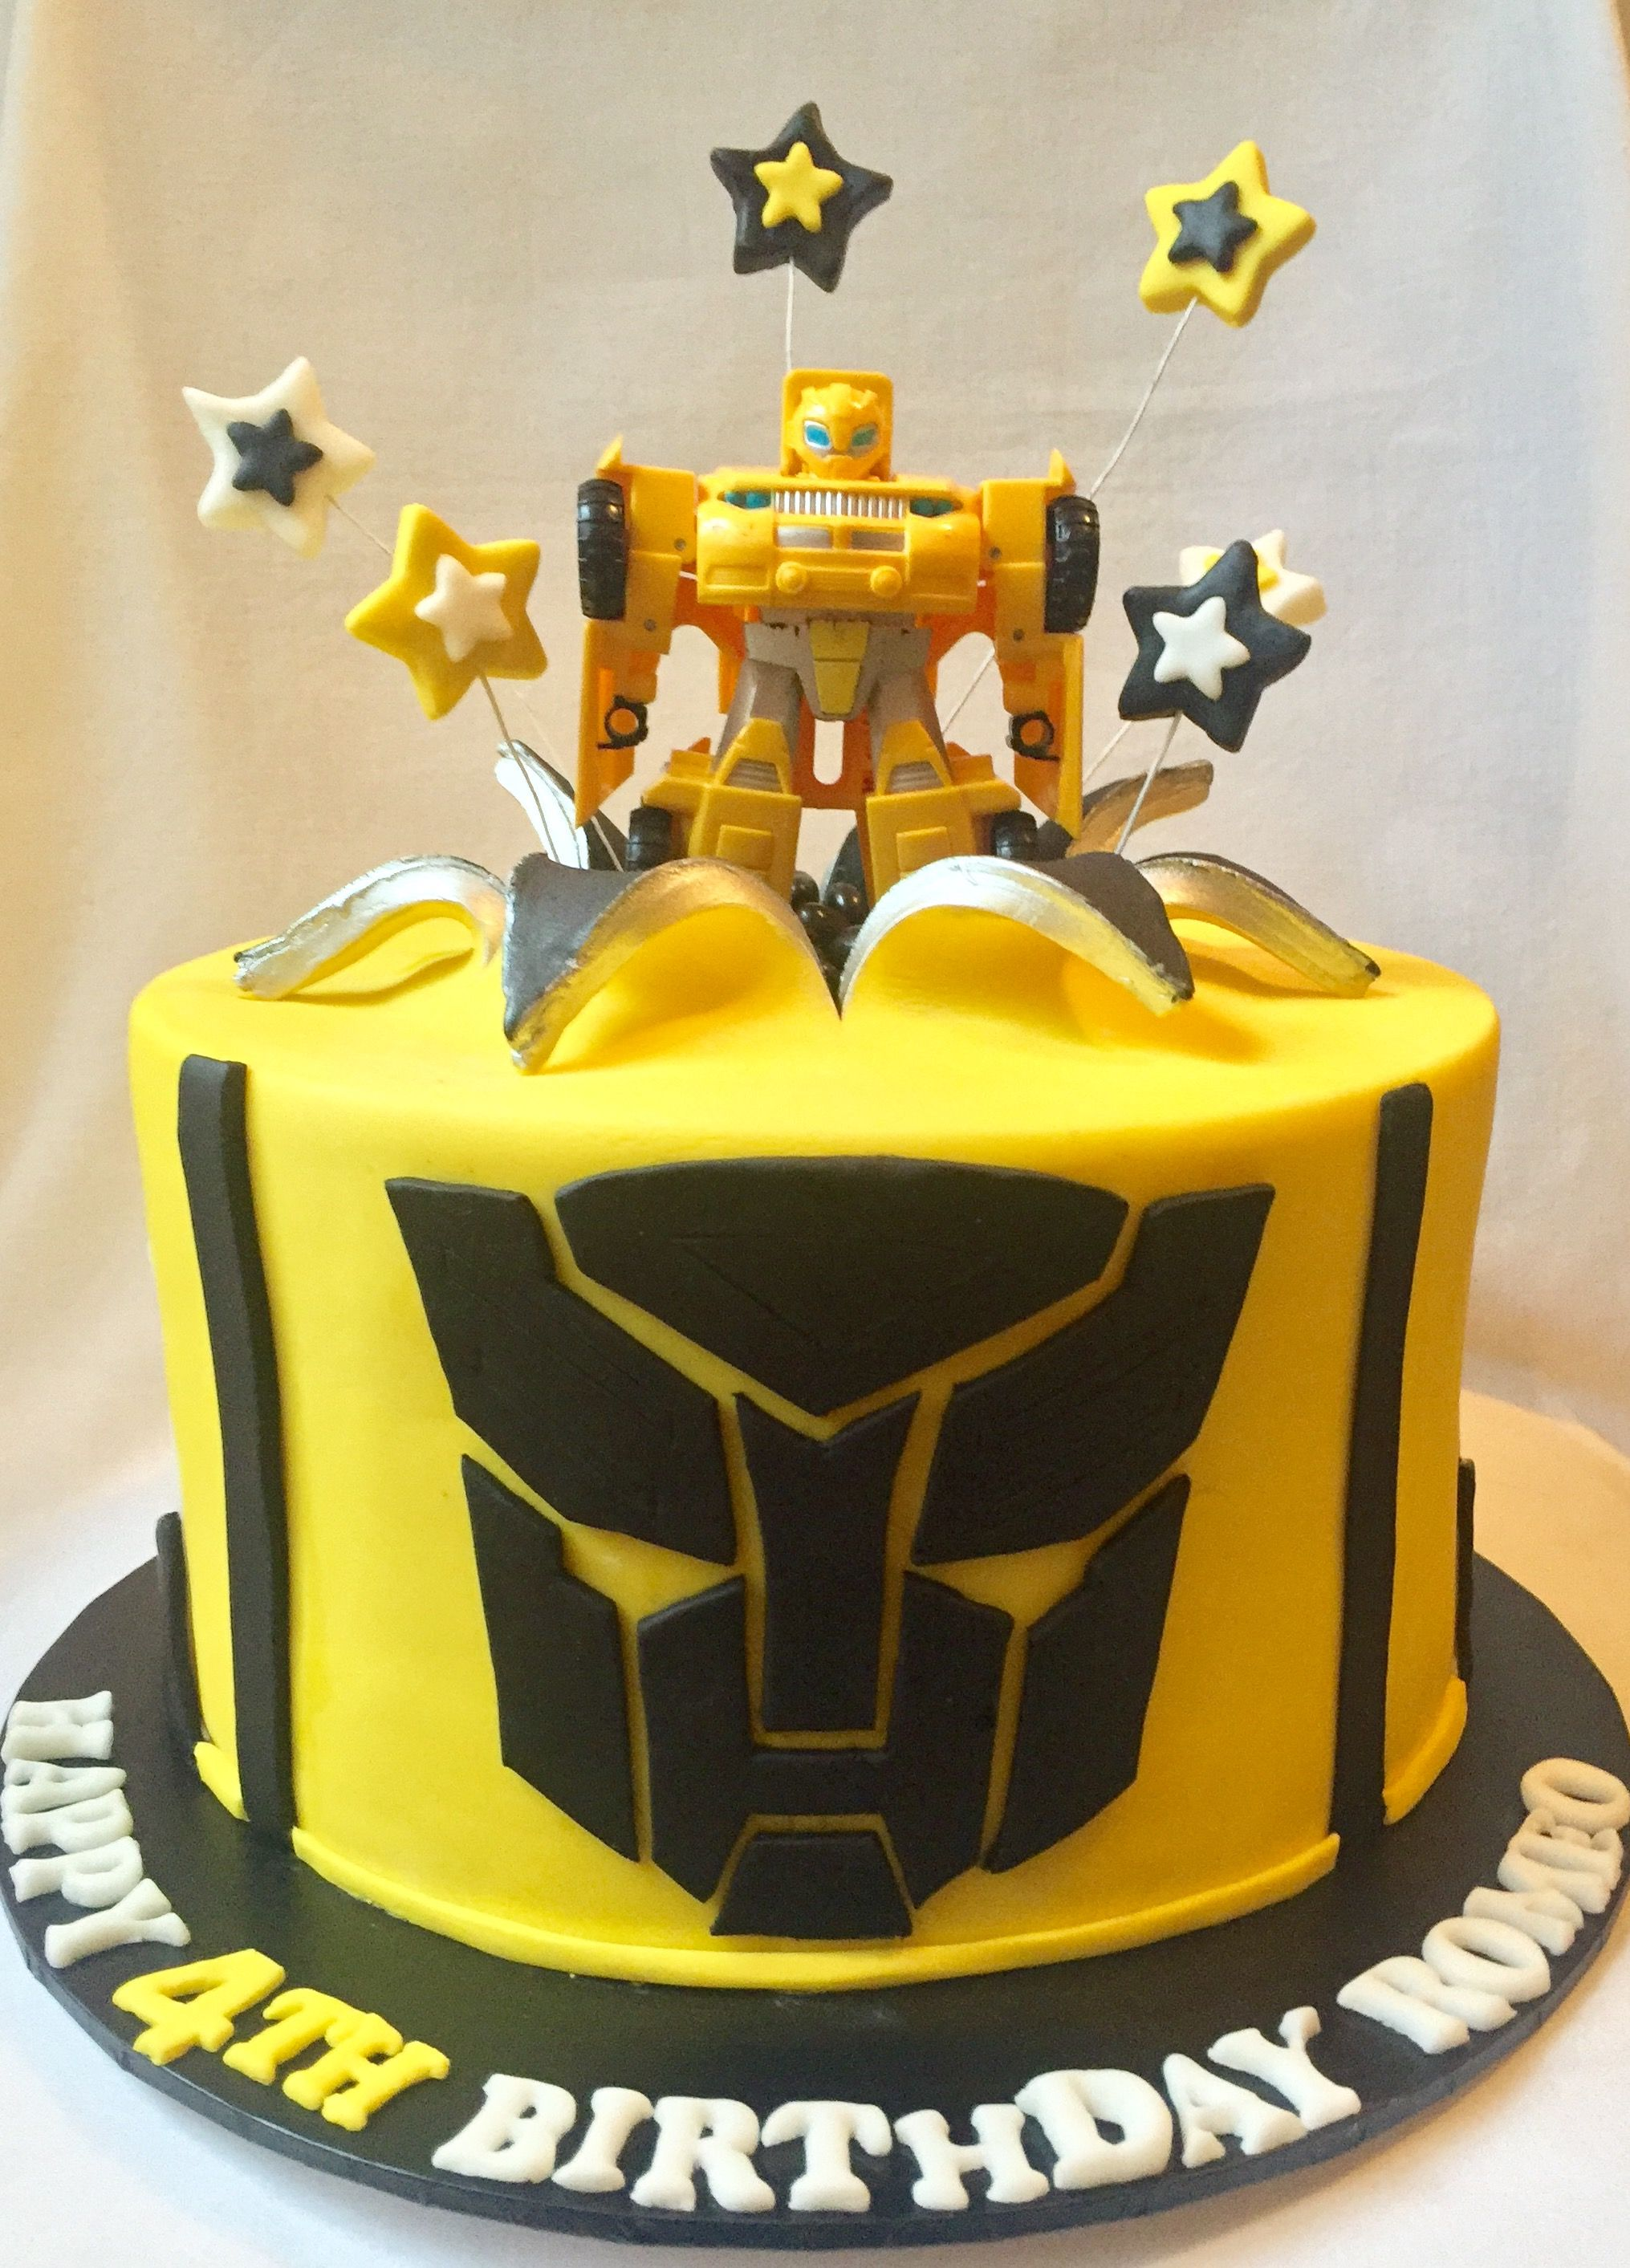 Bumble Bee Transformer Cake By Cupcakes For Your Cupcake Sydney